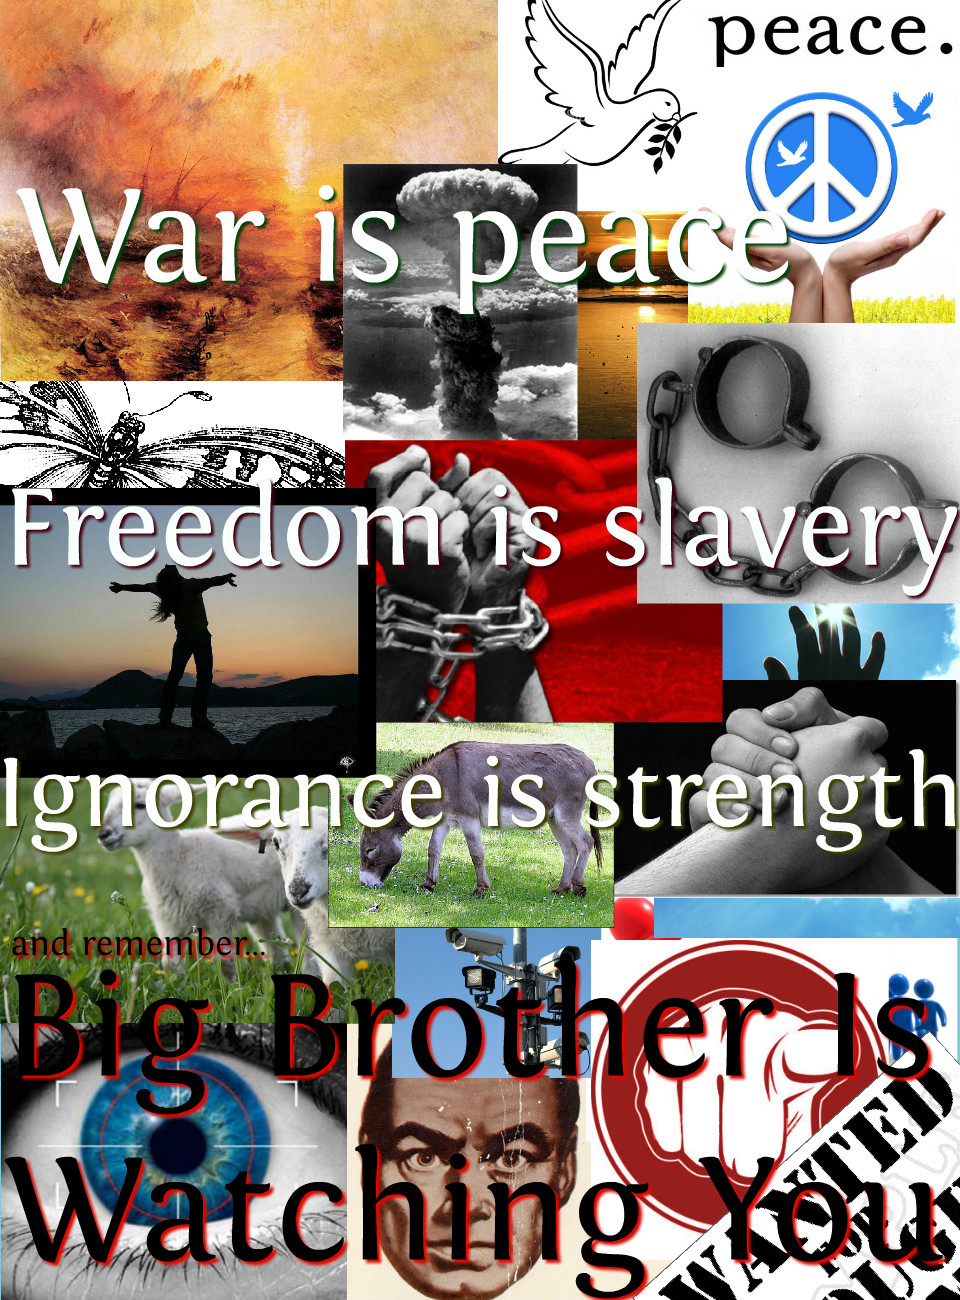 propaganda in 1984 The ruling party produces propaganda to promote big brother and to control its citizens in '1984,' a novel by george orwell the party ensures that.